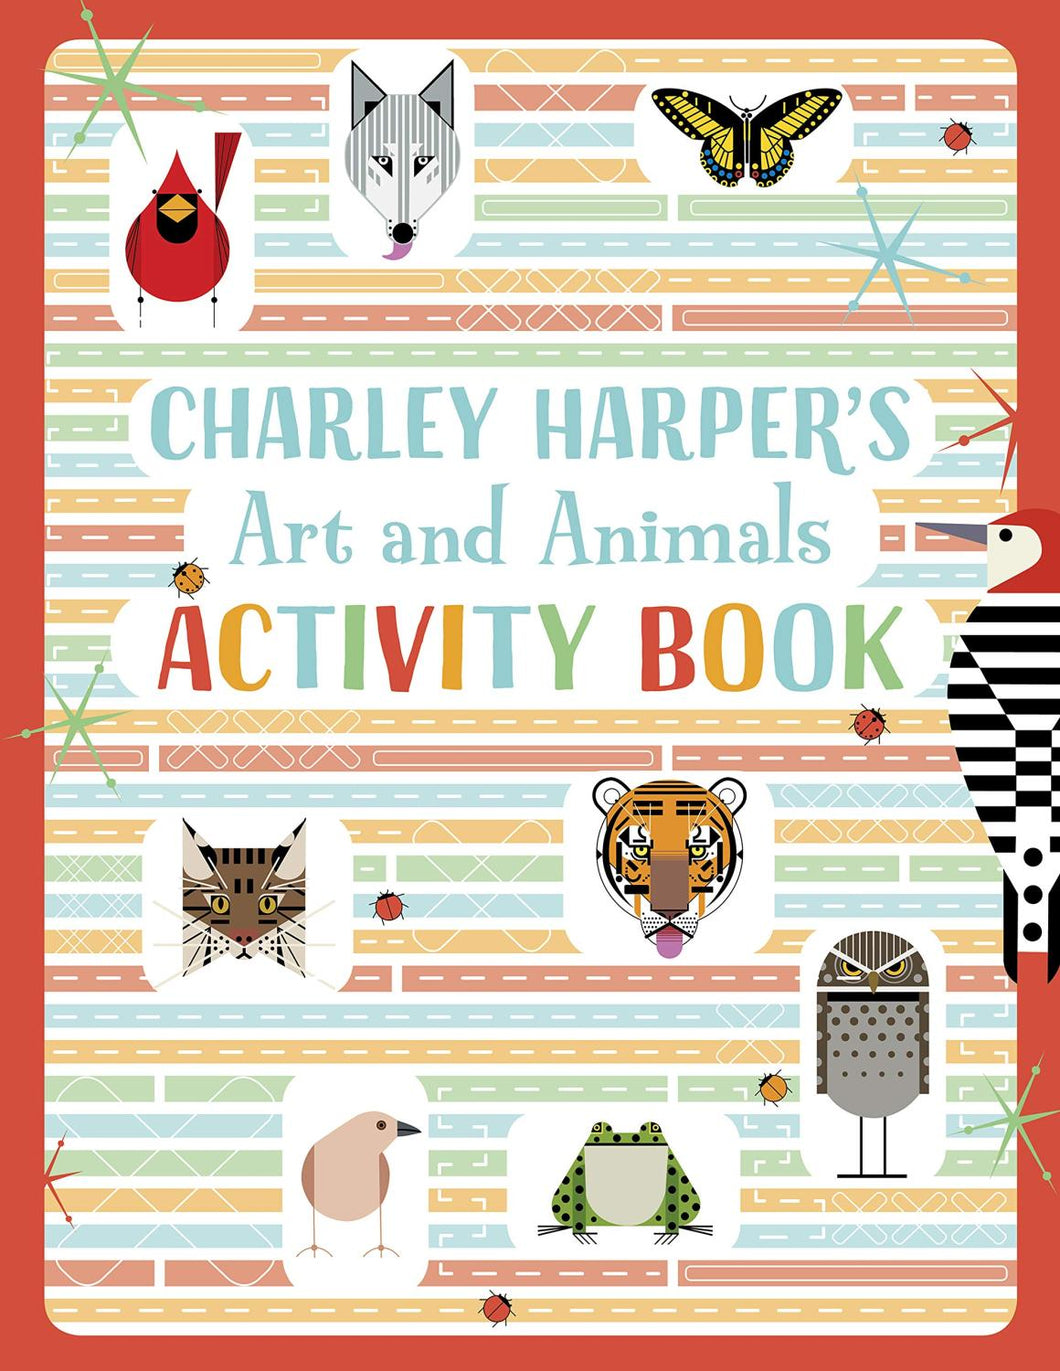 Charlie Harper's Art and